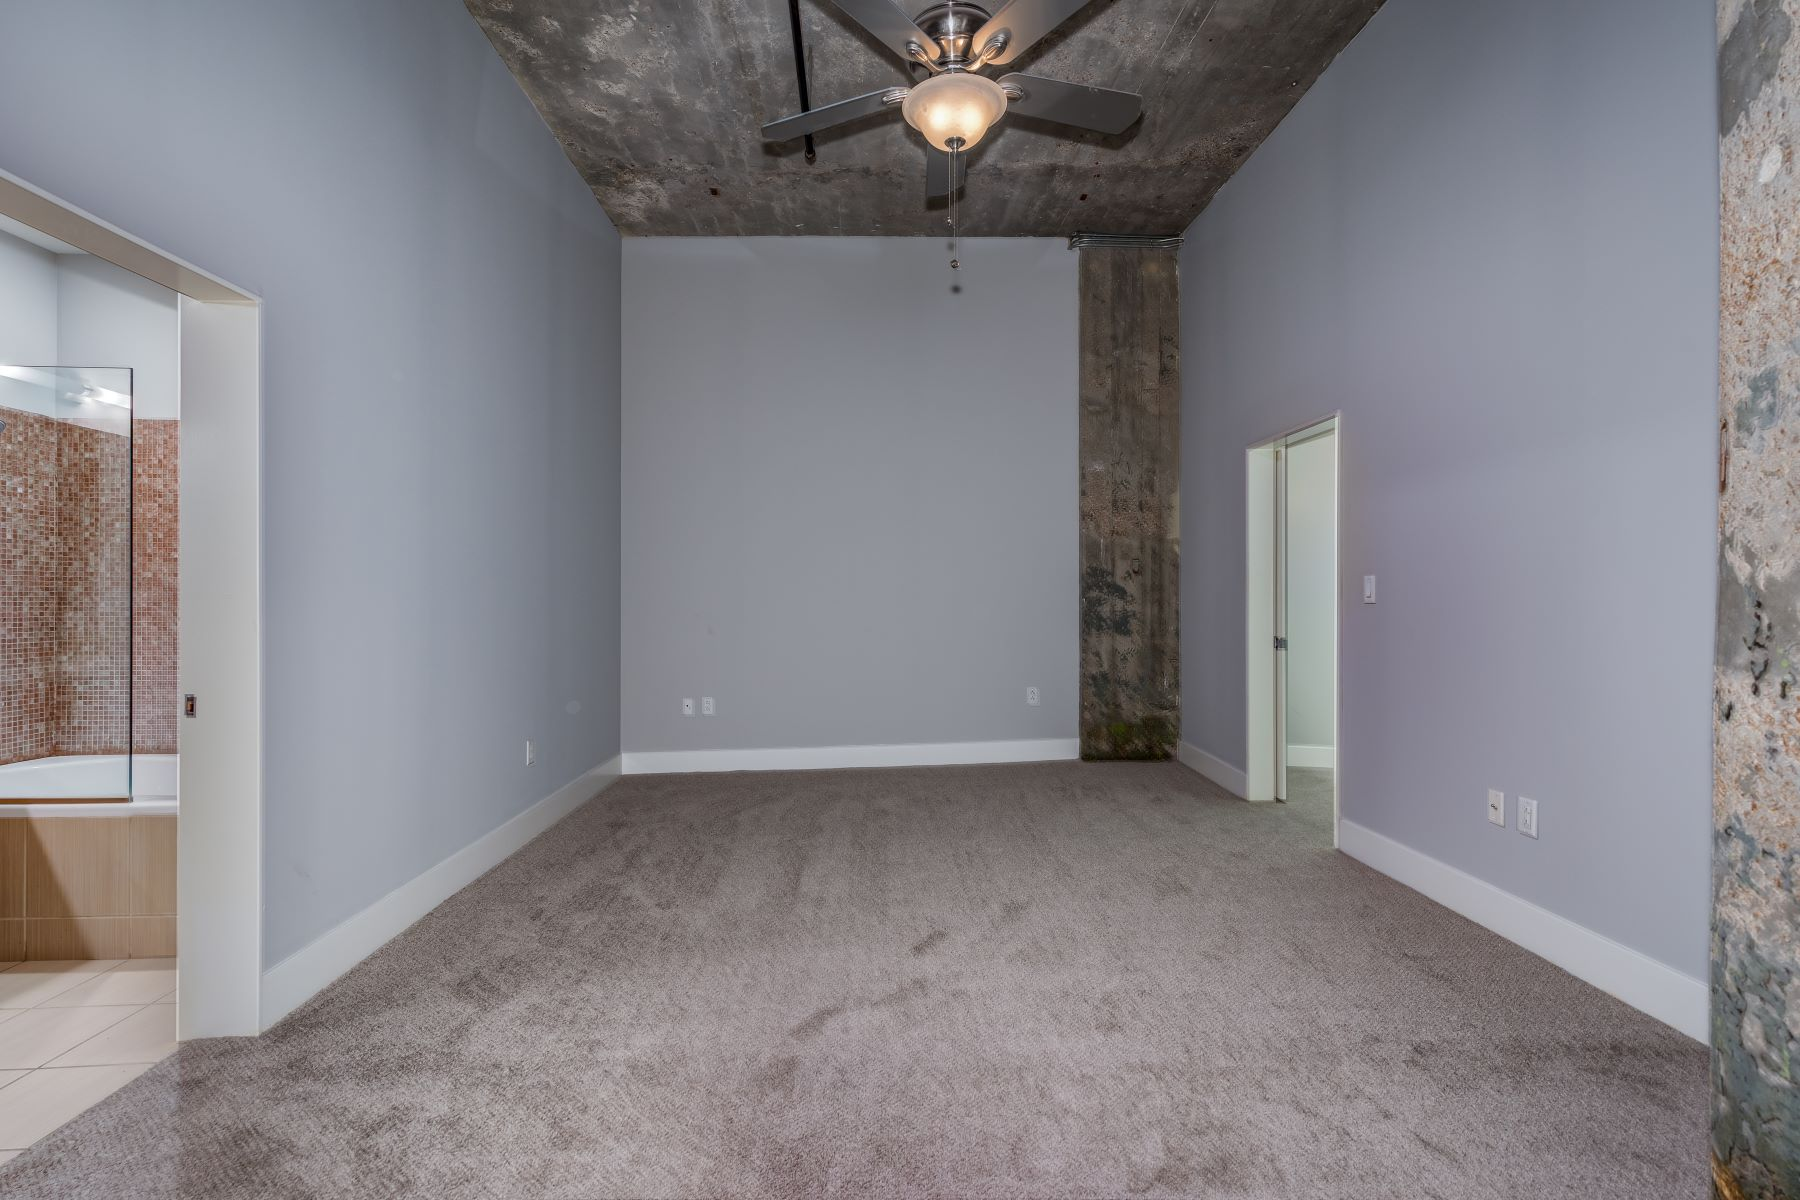 Additional photo for property listing at West End Lofts #320 4100 Forest Park #320 St. Louis, Missouri 63108 United States